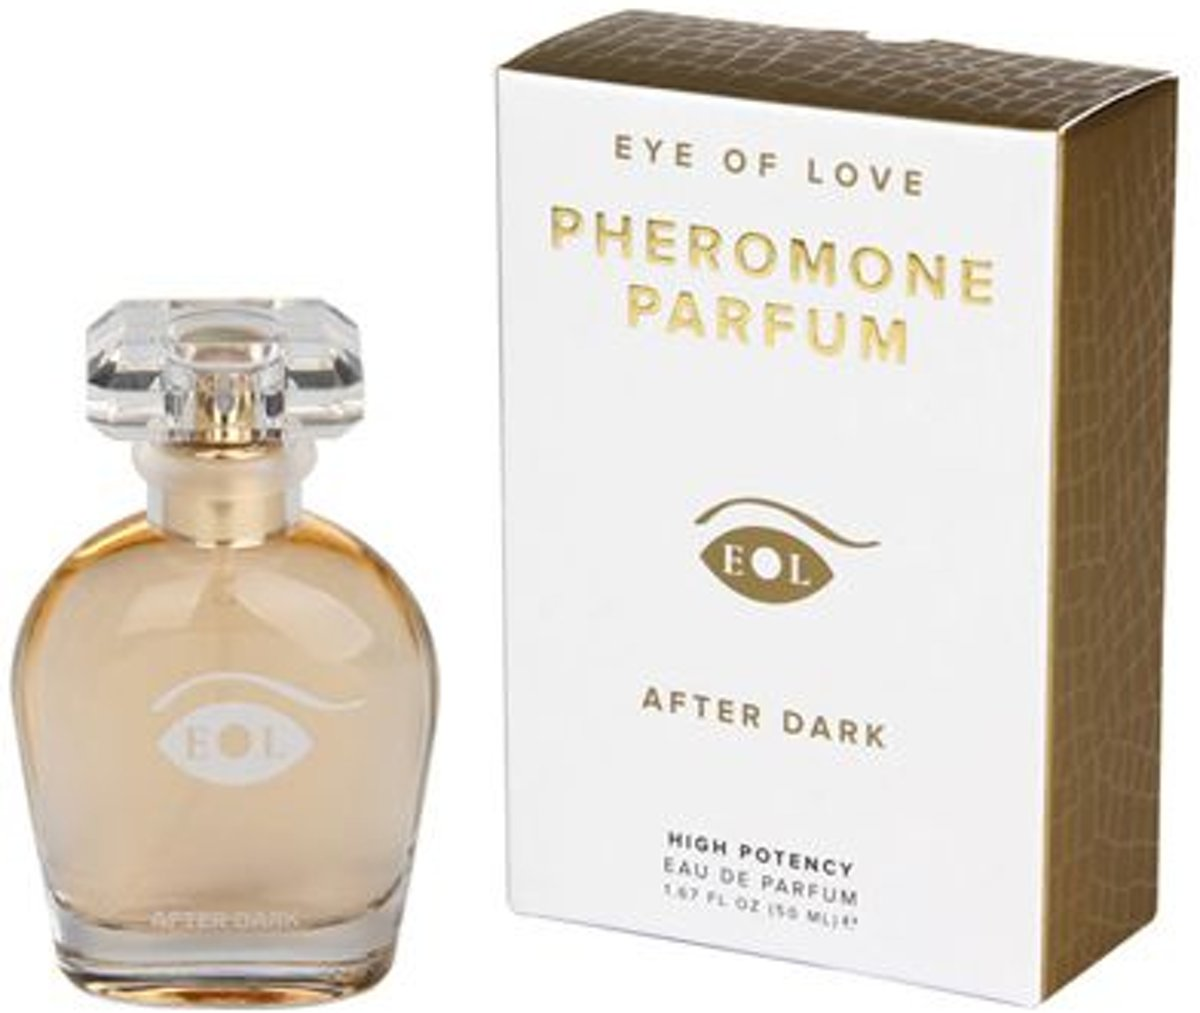 After Dark Feromonen Parfum - Vrouw/Man